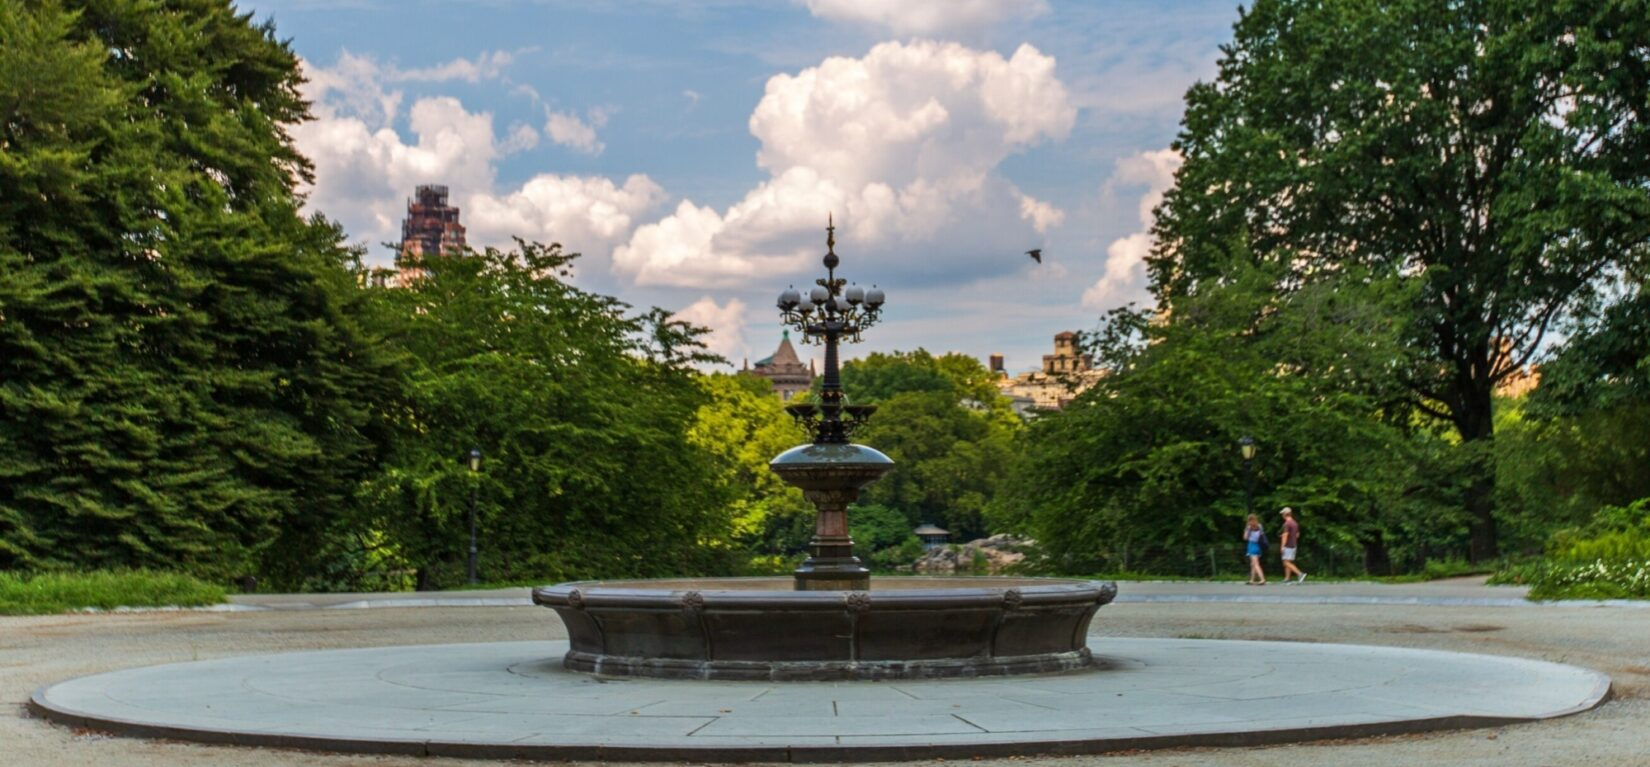 The fountain surrounded by a circular pathway lined with trees, under a blue sky with billowing clouds.